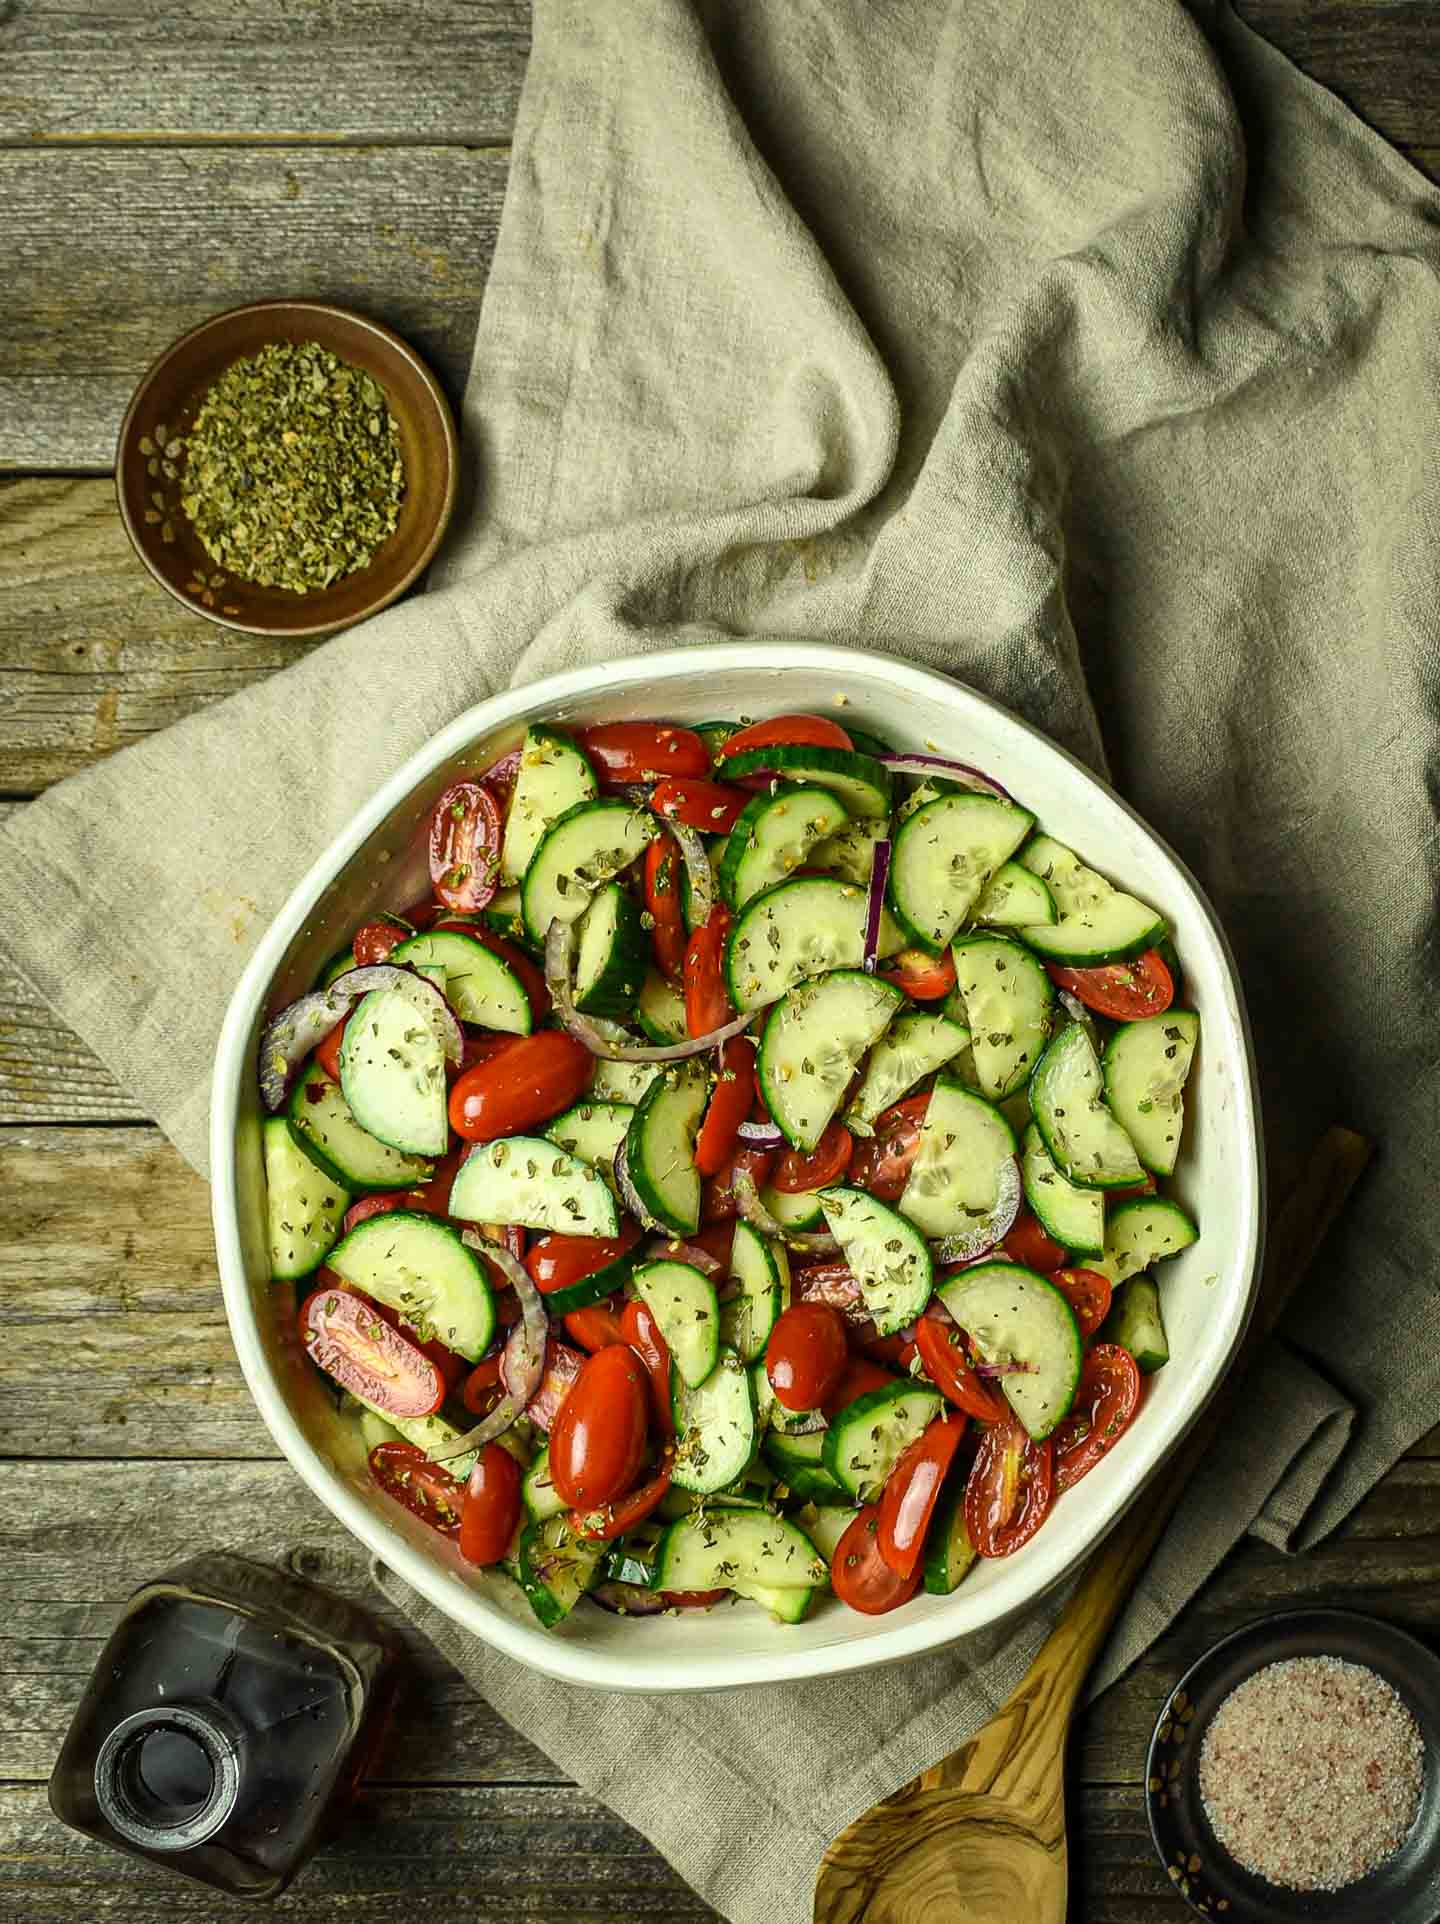 Tomato Cucumber salad in large bowl.